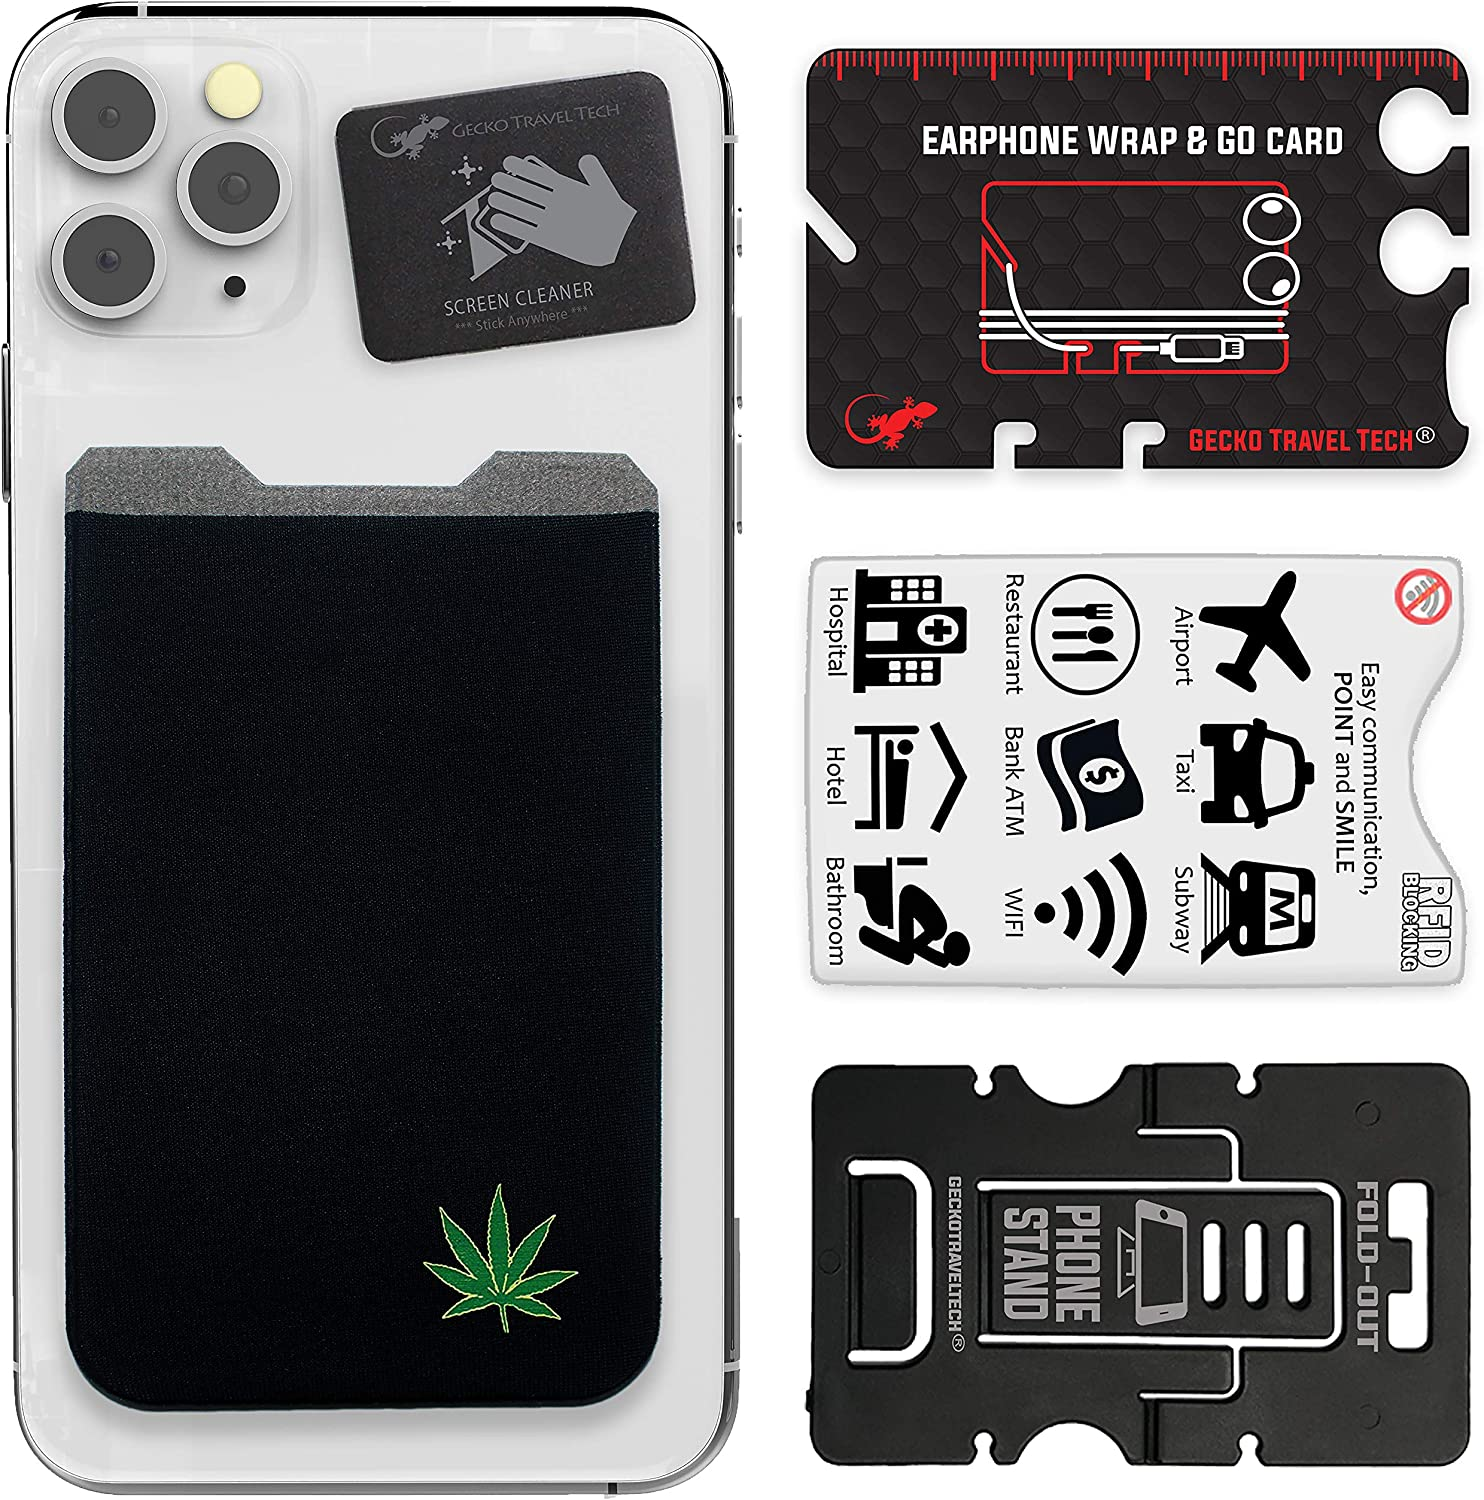 Phone Wallet - Adhesive Card Holder - Cell Phone Pouch - Stick on Lycra Pocket by Gecko - Carry Credit Cards and Cash (Weed)